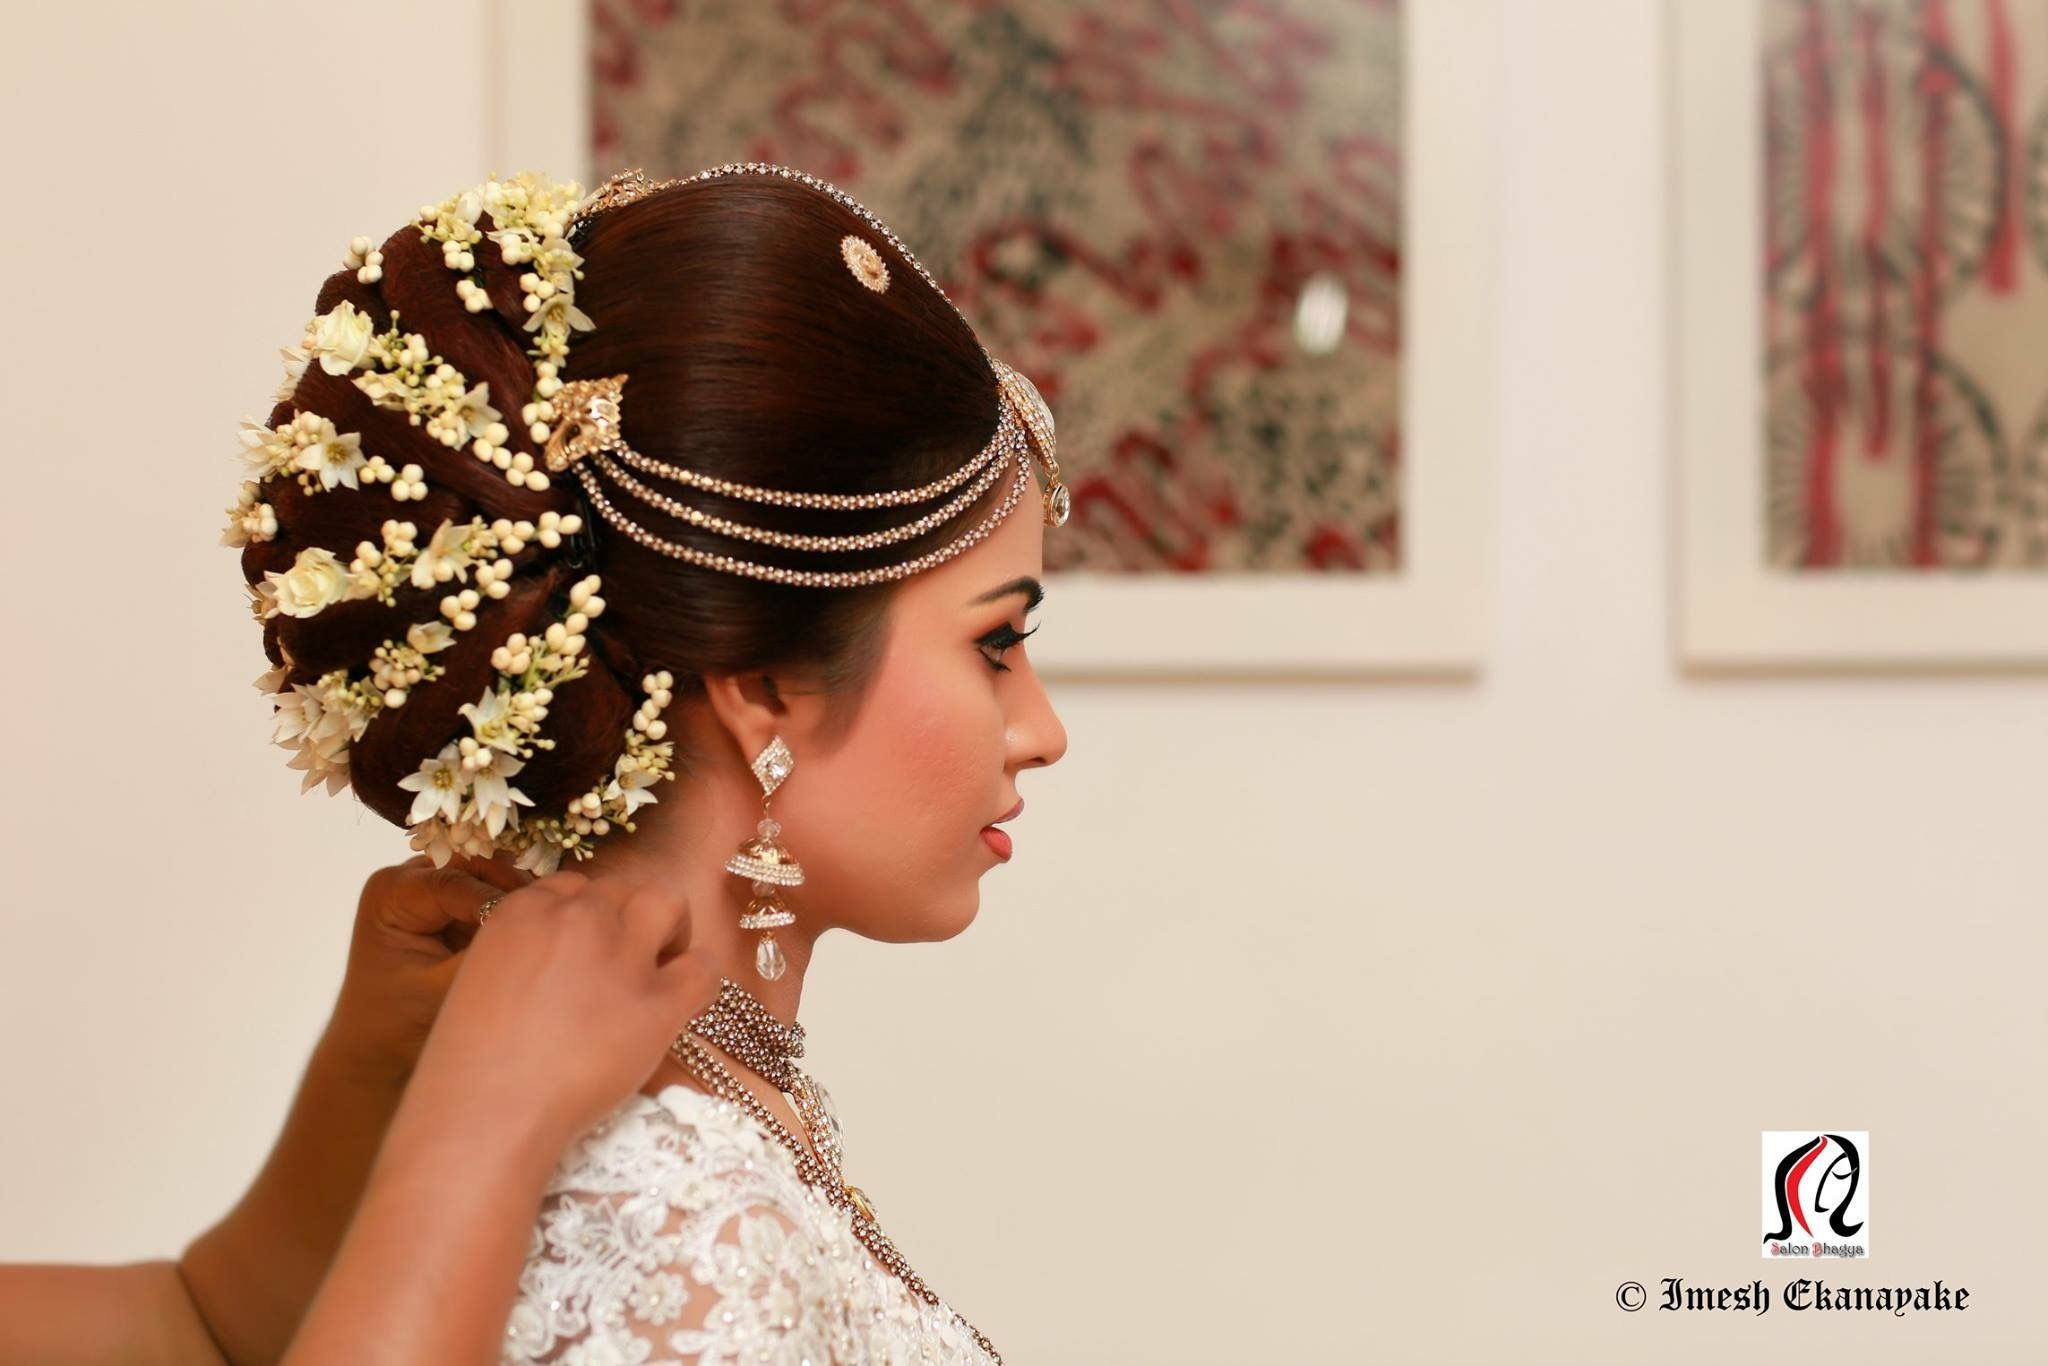 Pin By Wedding Sri Lanka On Kandyan Bridal Sri Lanka Dress Hairstyles Bridal Wear Bridal Hair